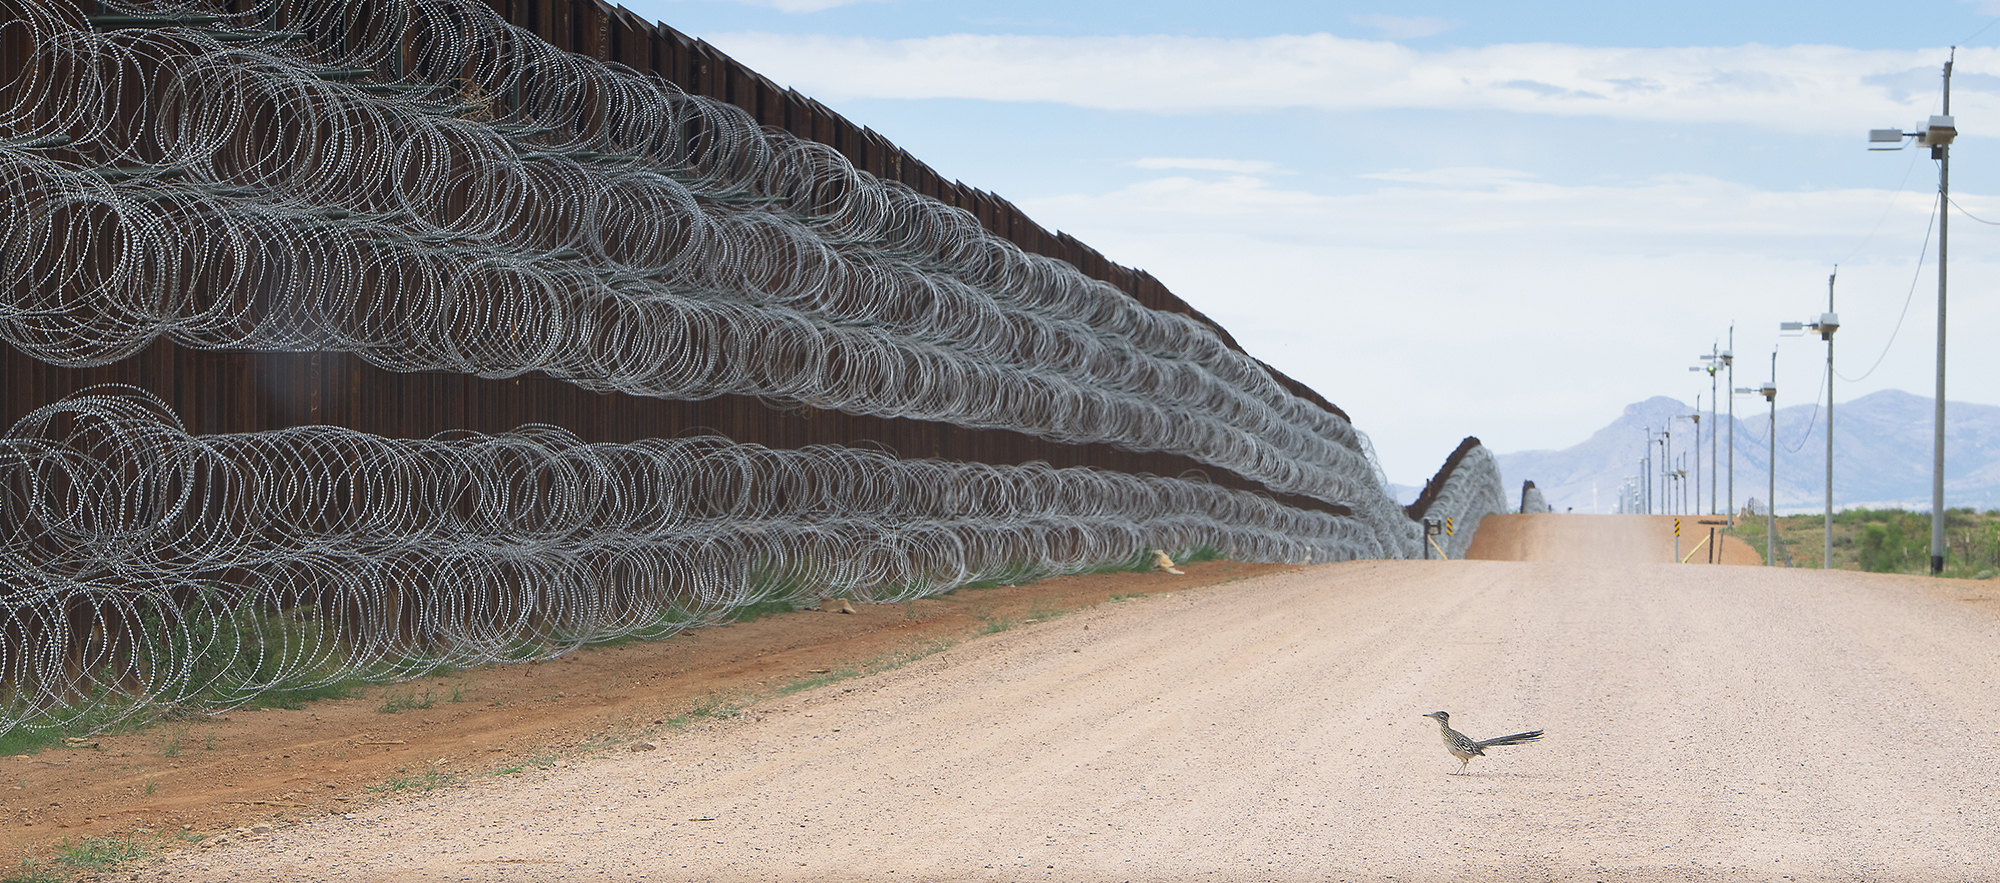 Roadrunner Approaching the Border Wall